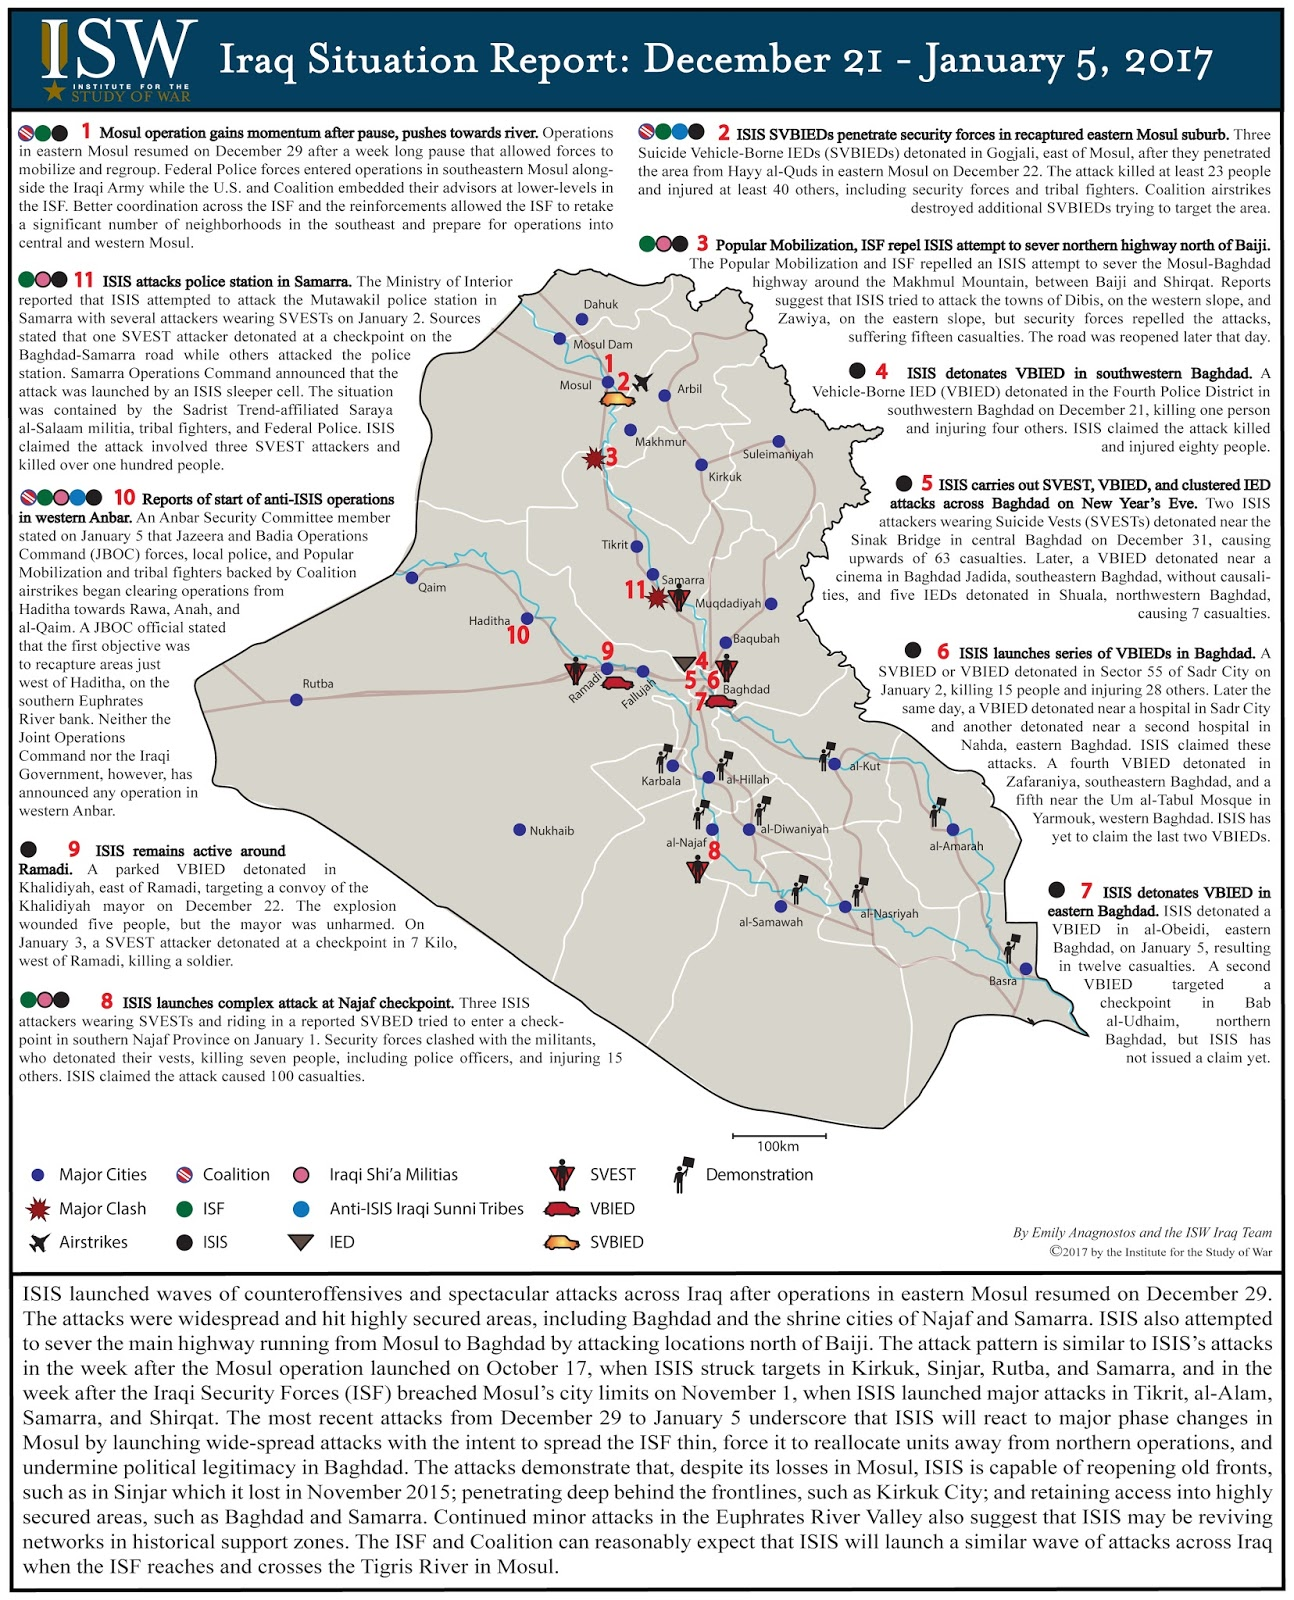 Eye On The World: IRAQ SITUATION REPORT: DECEMBER 21, 2016 - JANUARY ...